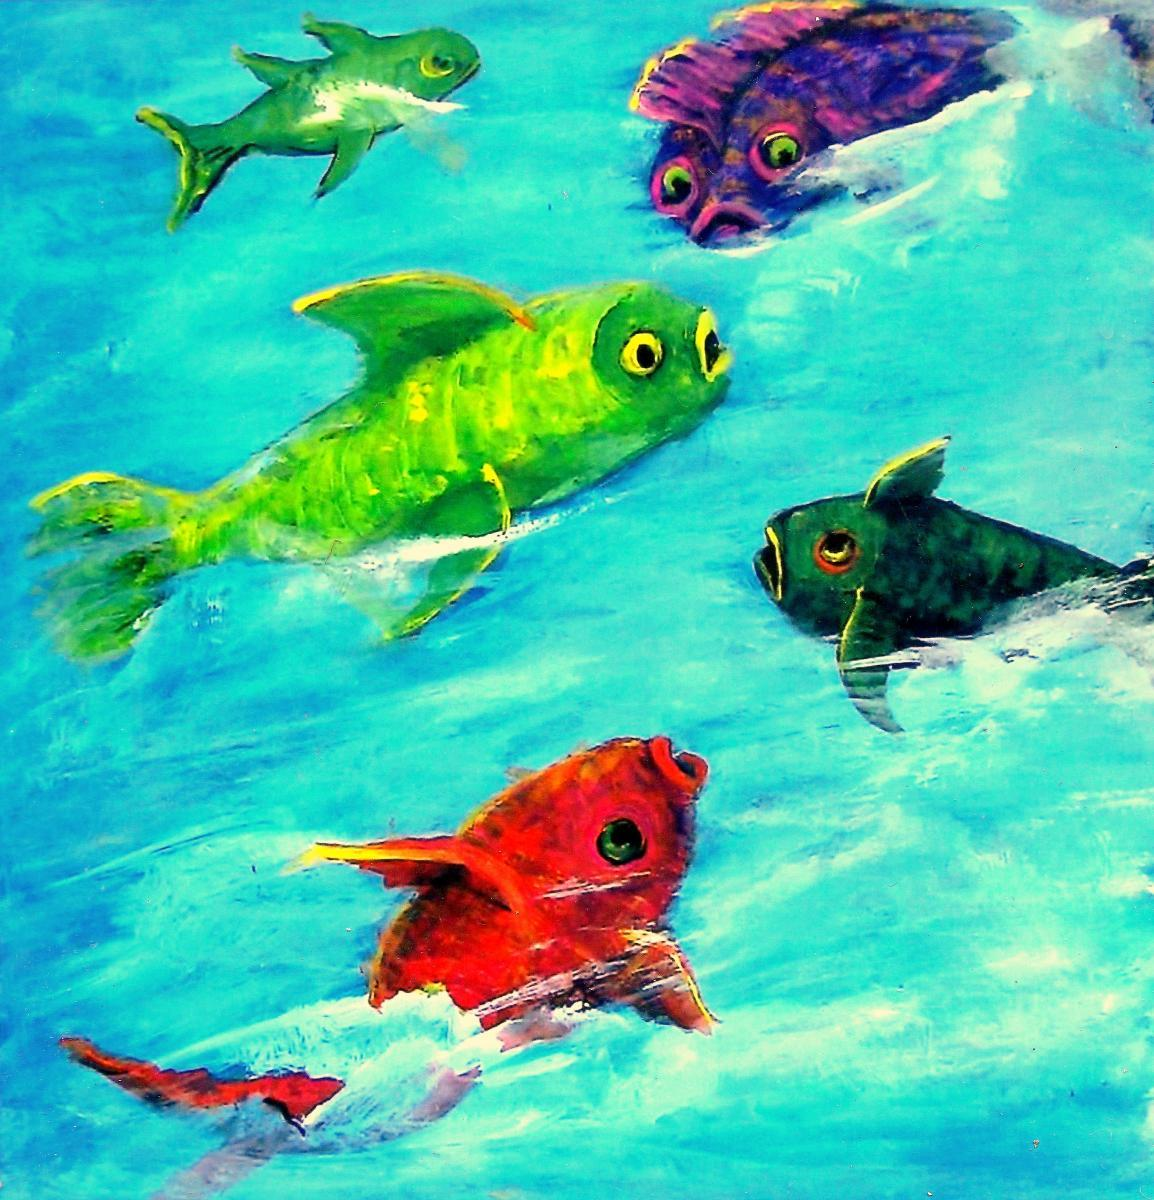 reds, greens, bright aqua, blue, silly, humorous, impressionism, sea life, fish (large view)